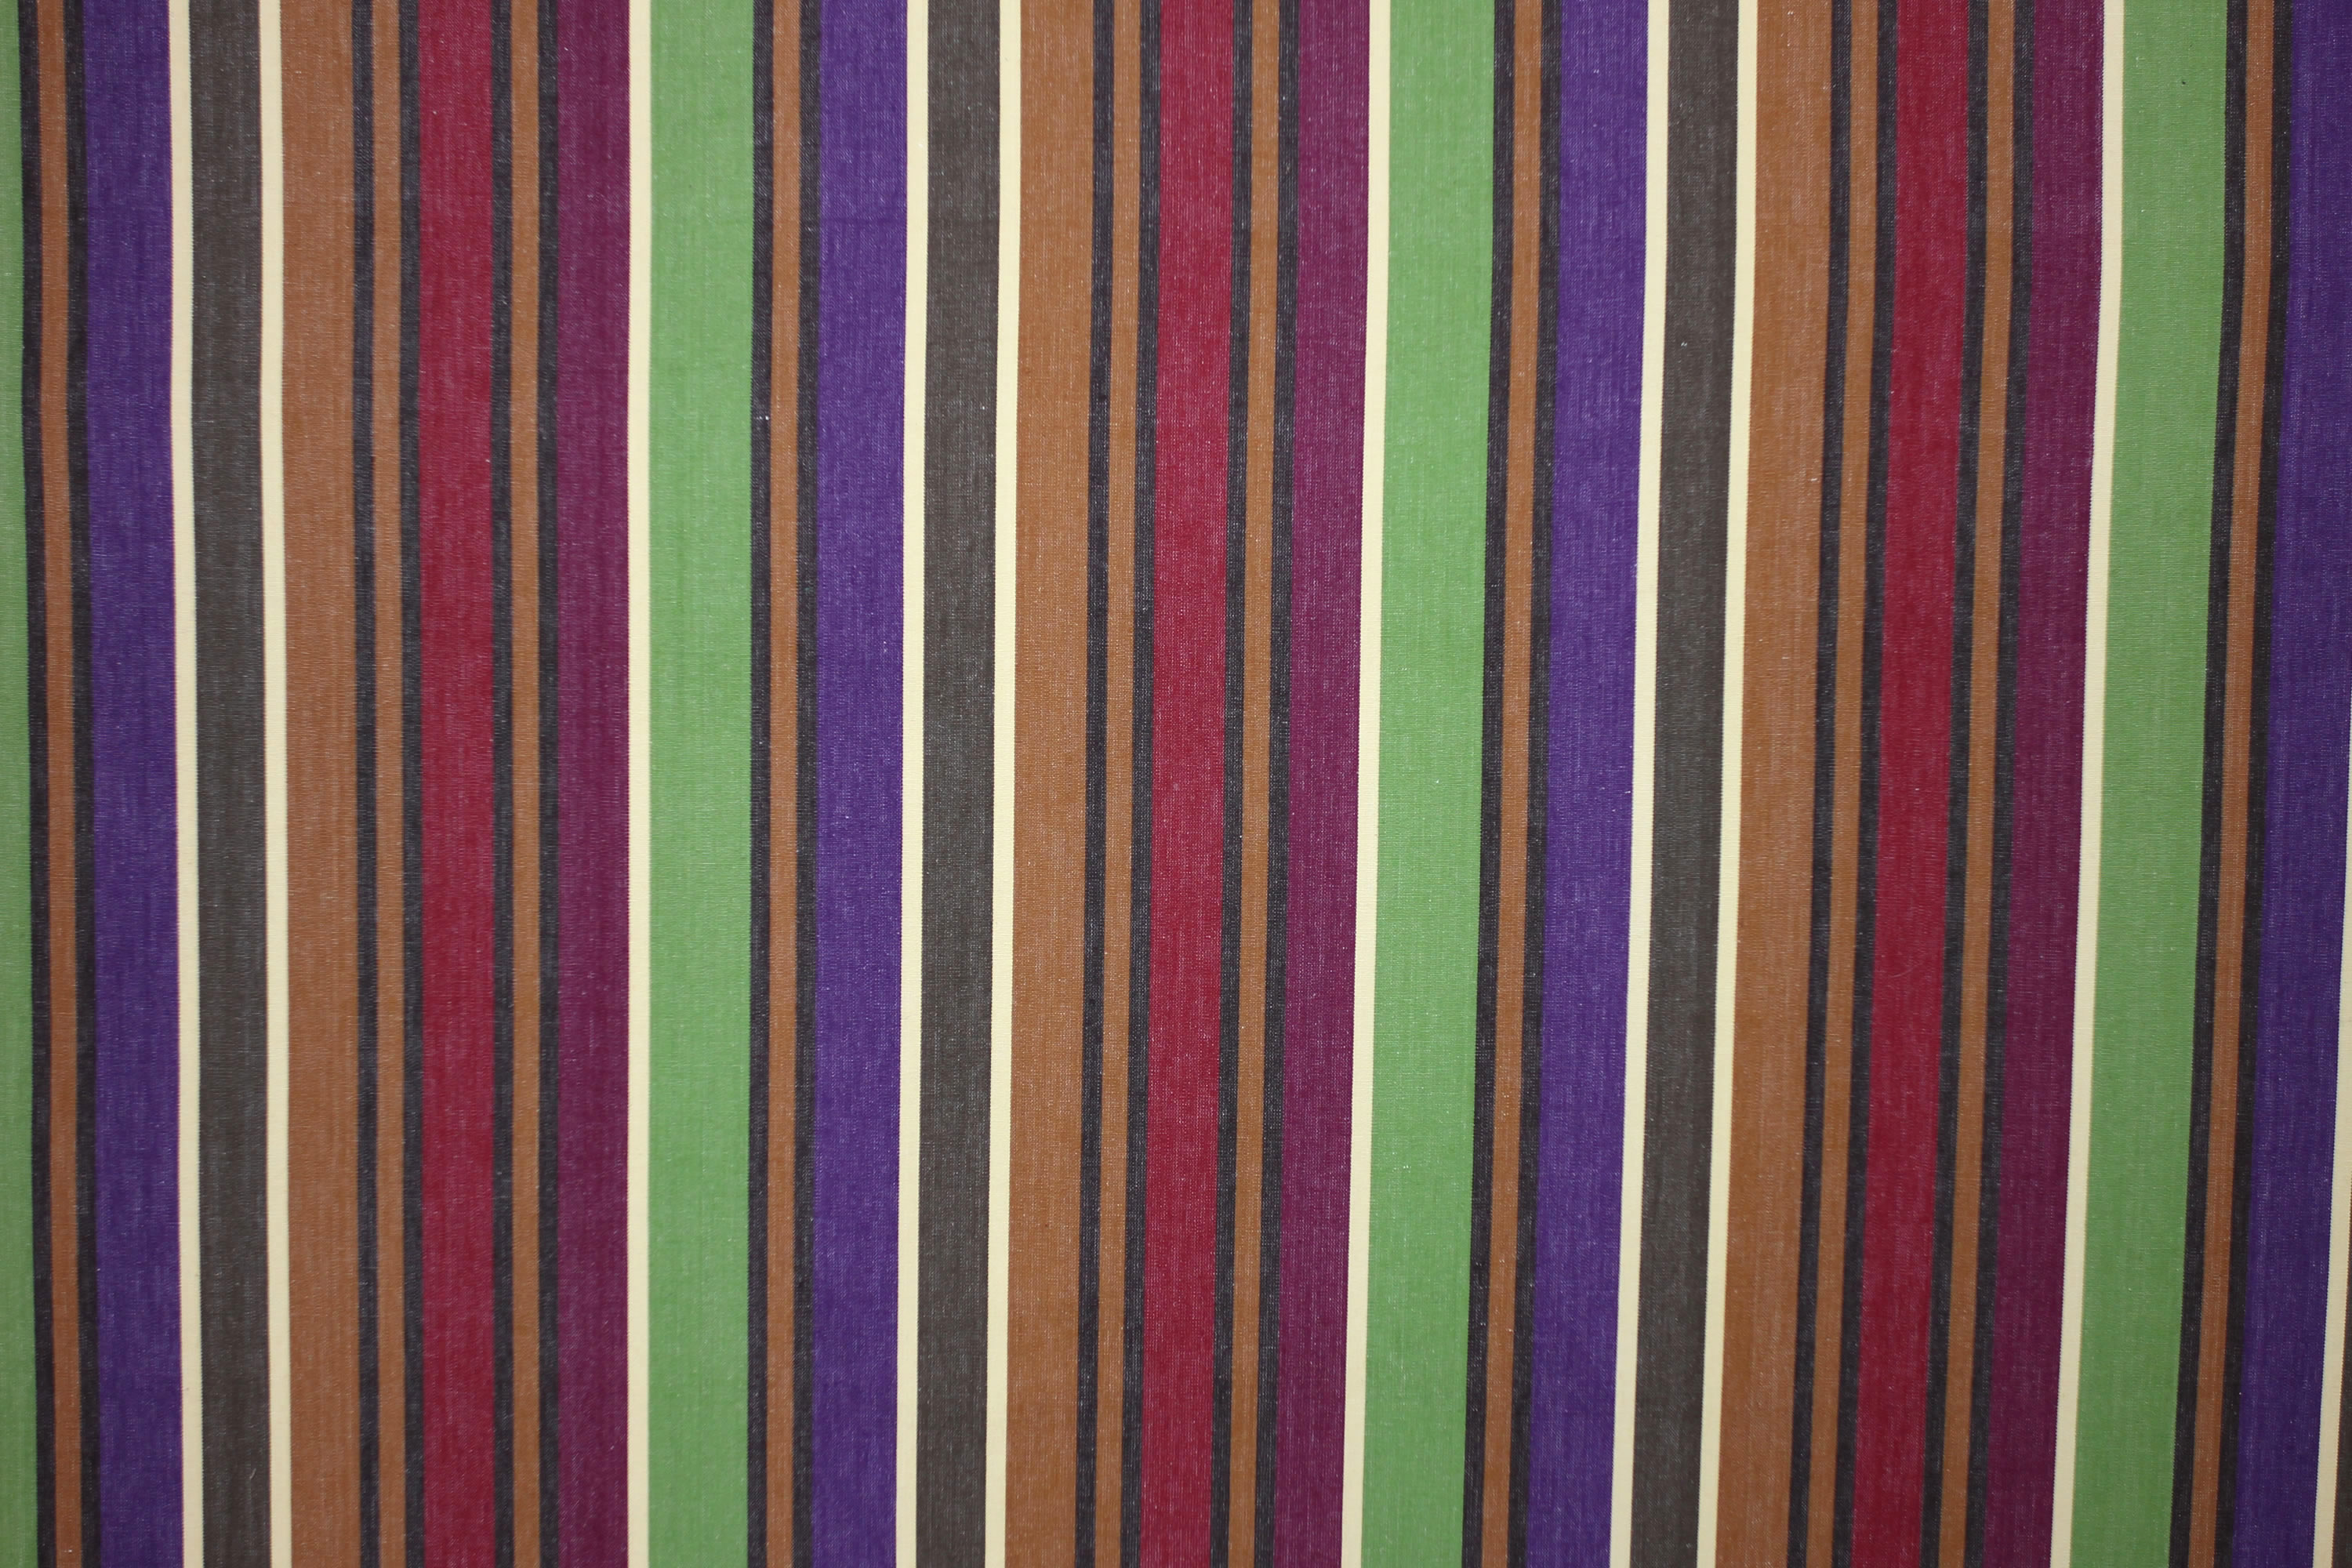 Caramel Striped Fabrics | Stripe Cotton Fabrics | Striped Curtain Fabrics | Upholstery Fabrics  Yoga Stripes